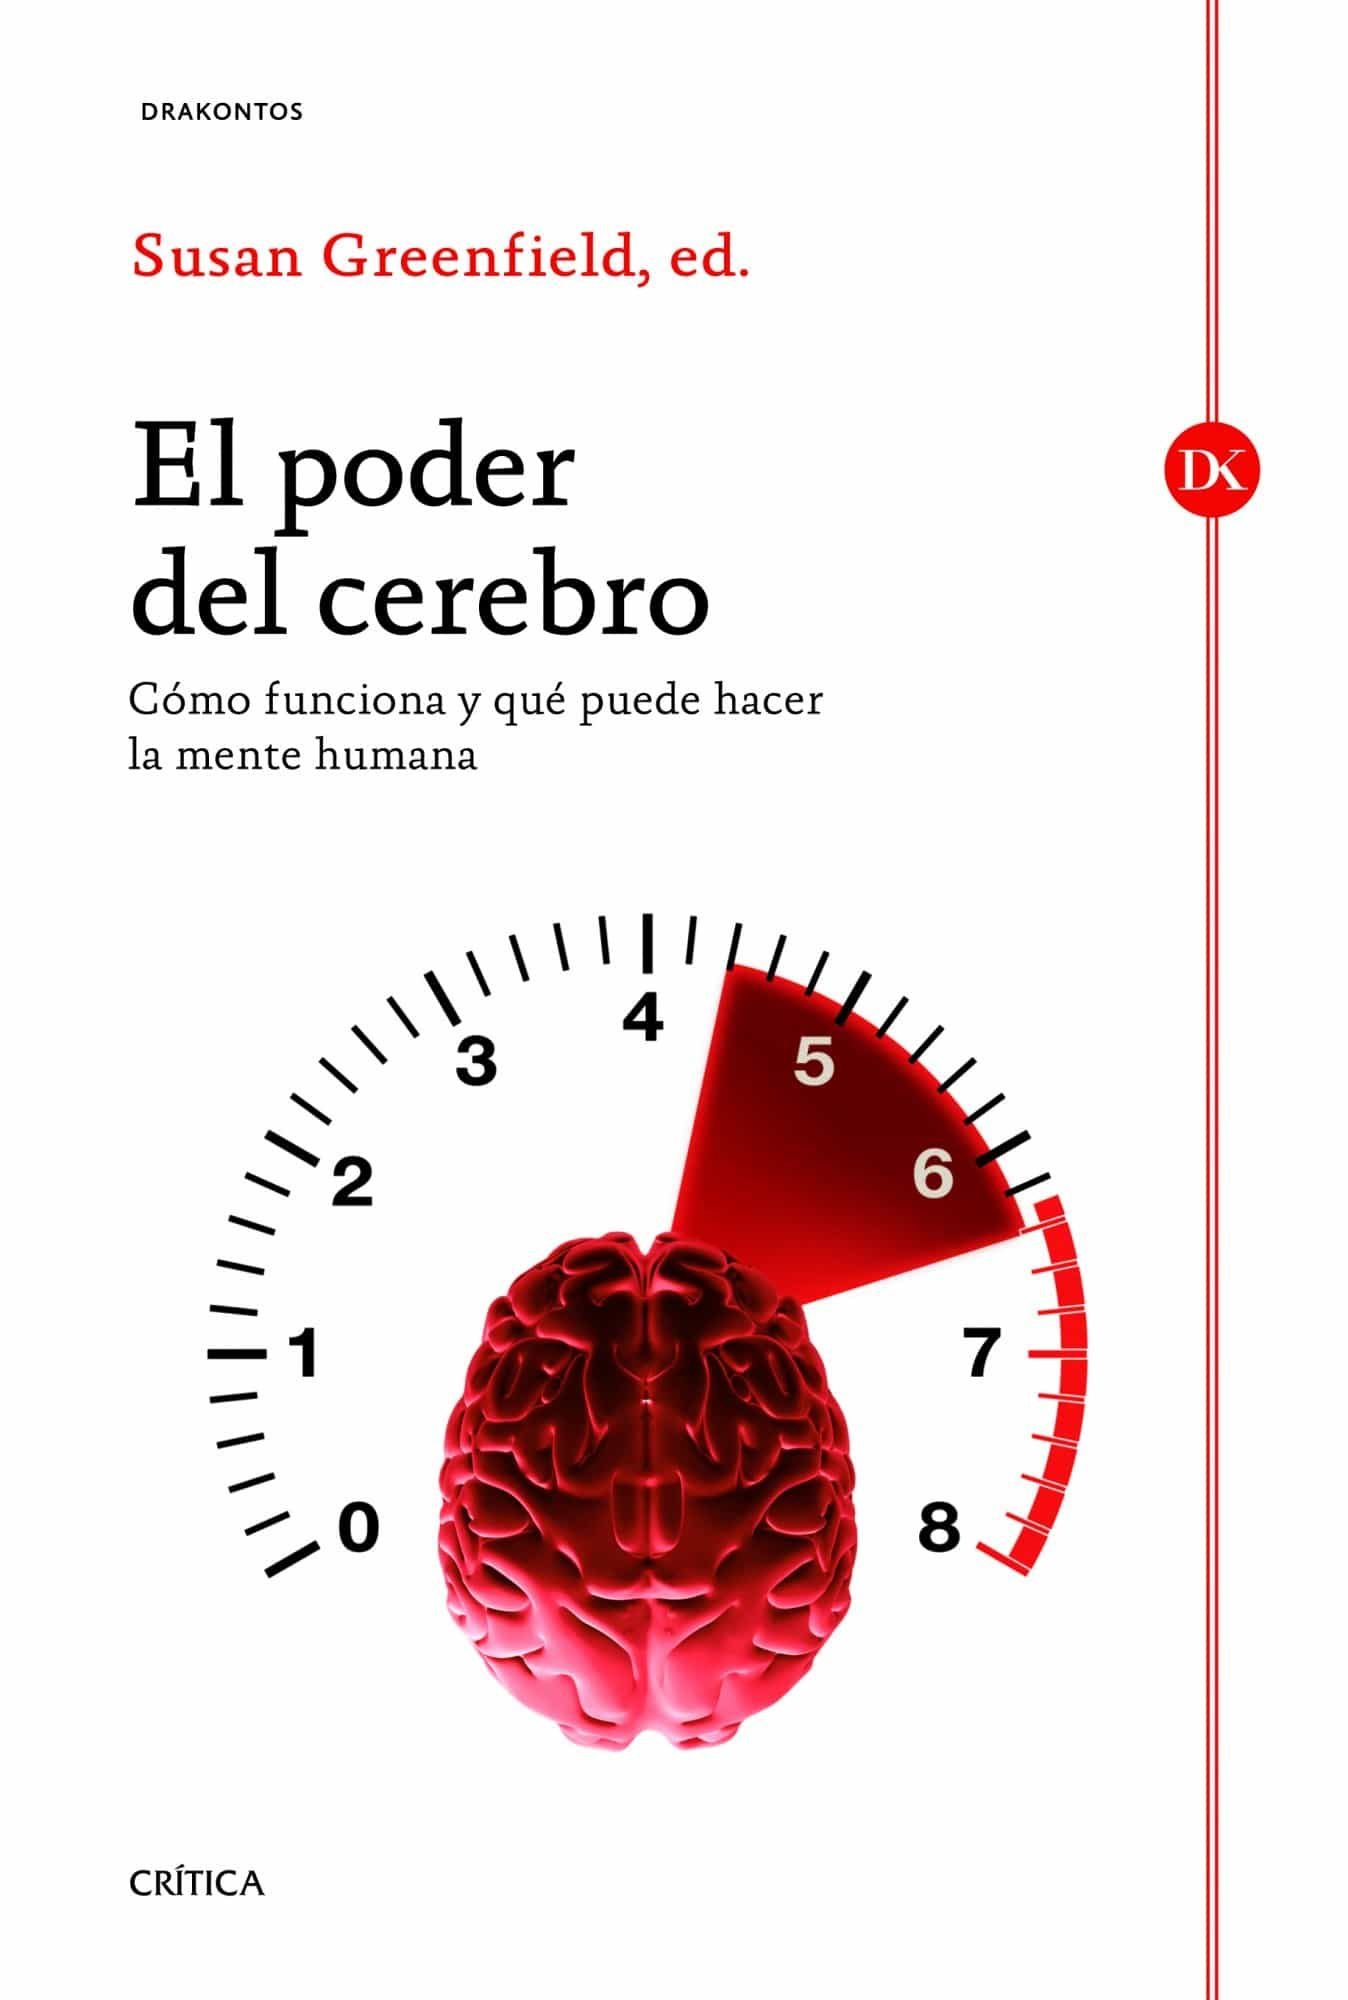 El poder del cerebro ebook susan greenfield 9788498924701